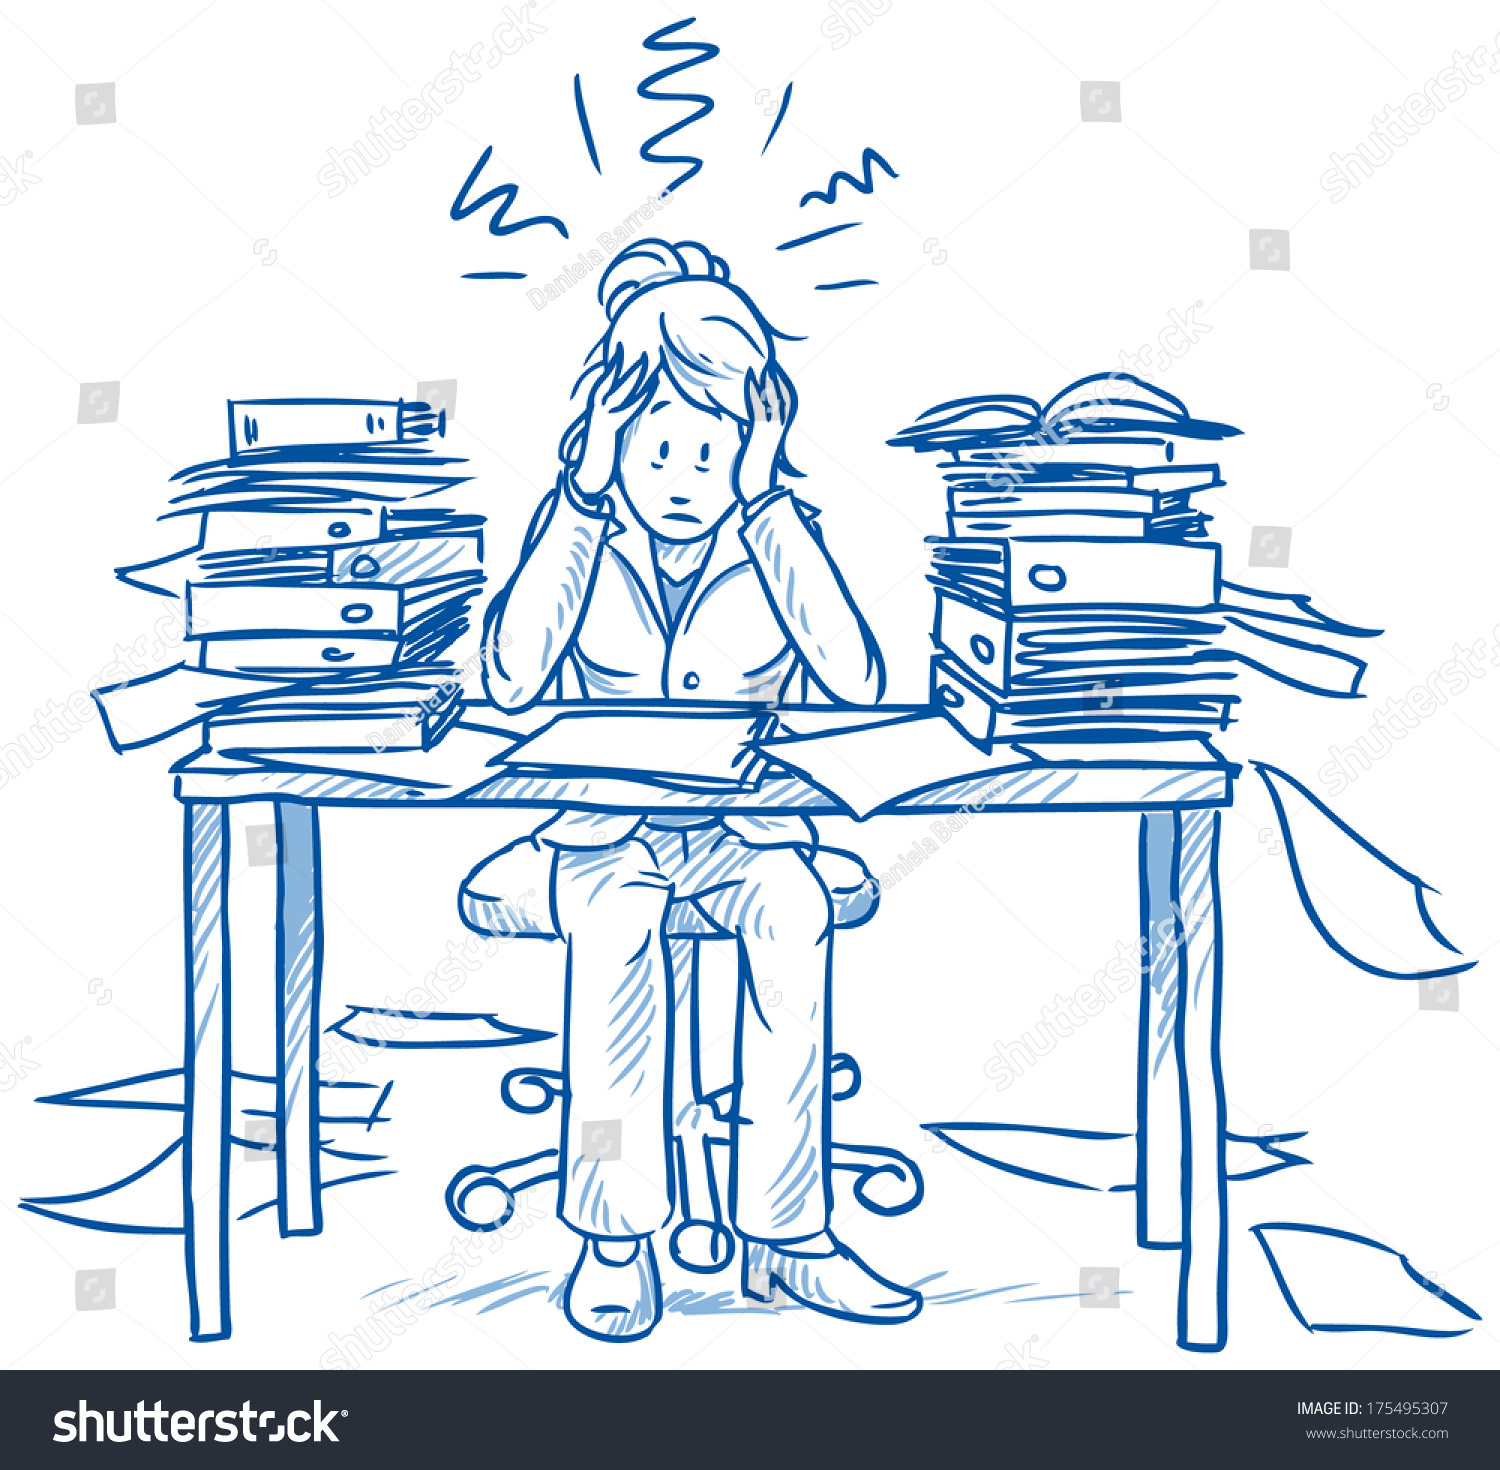 business w employee being desperate much stock vector business w employee being desperate of too much work at her desk full of documents